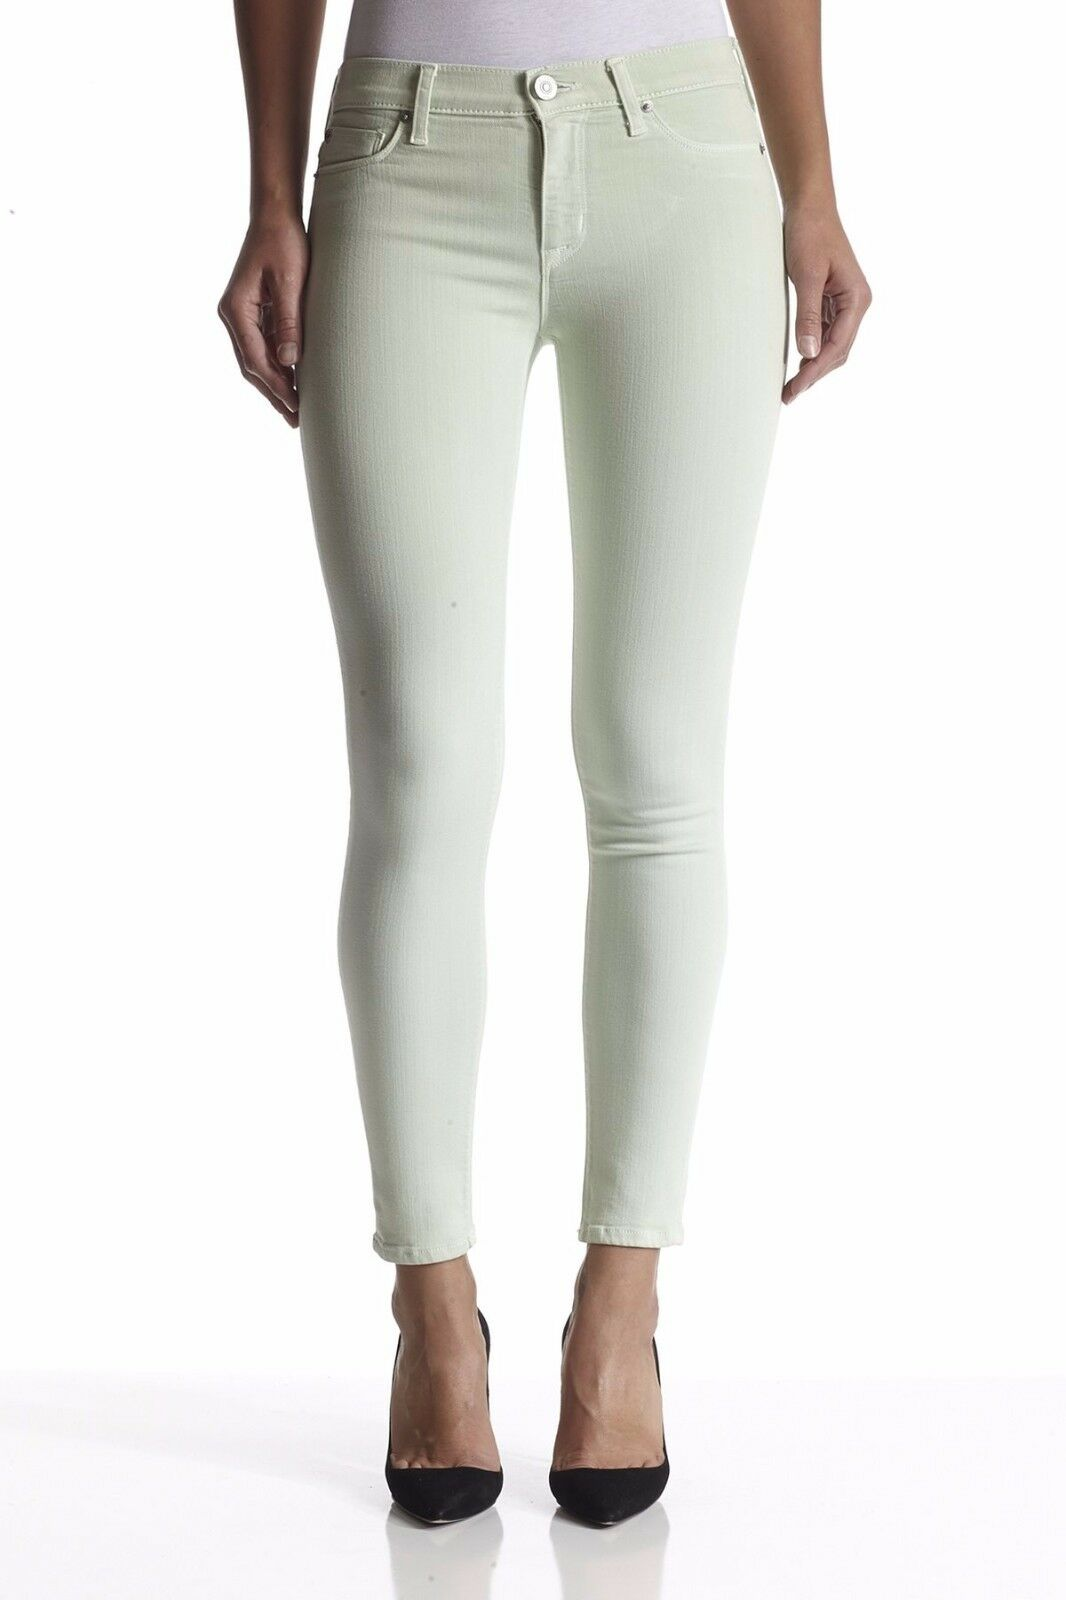 176 NWT HUDSON 26 Seafort Light Green Nico Mid Rise Ankle Super Skinny Jeans